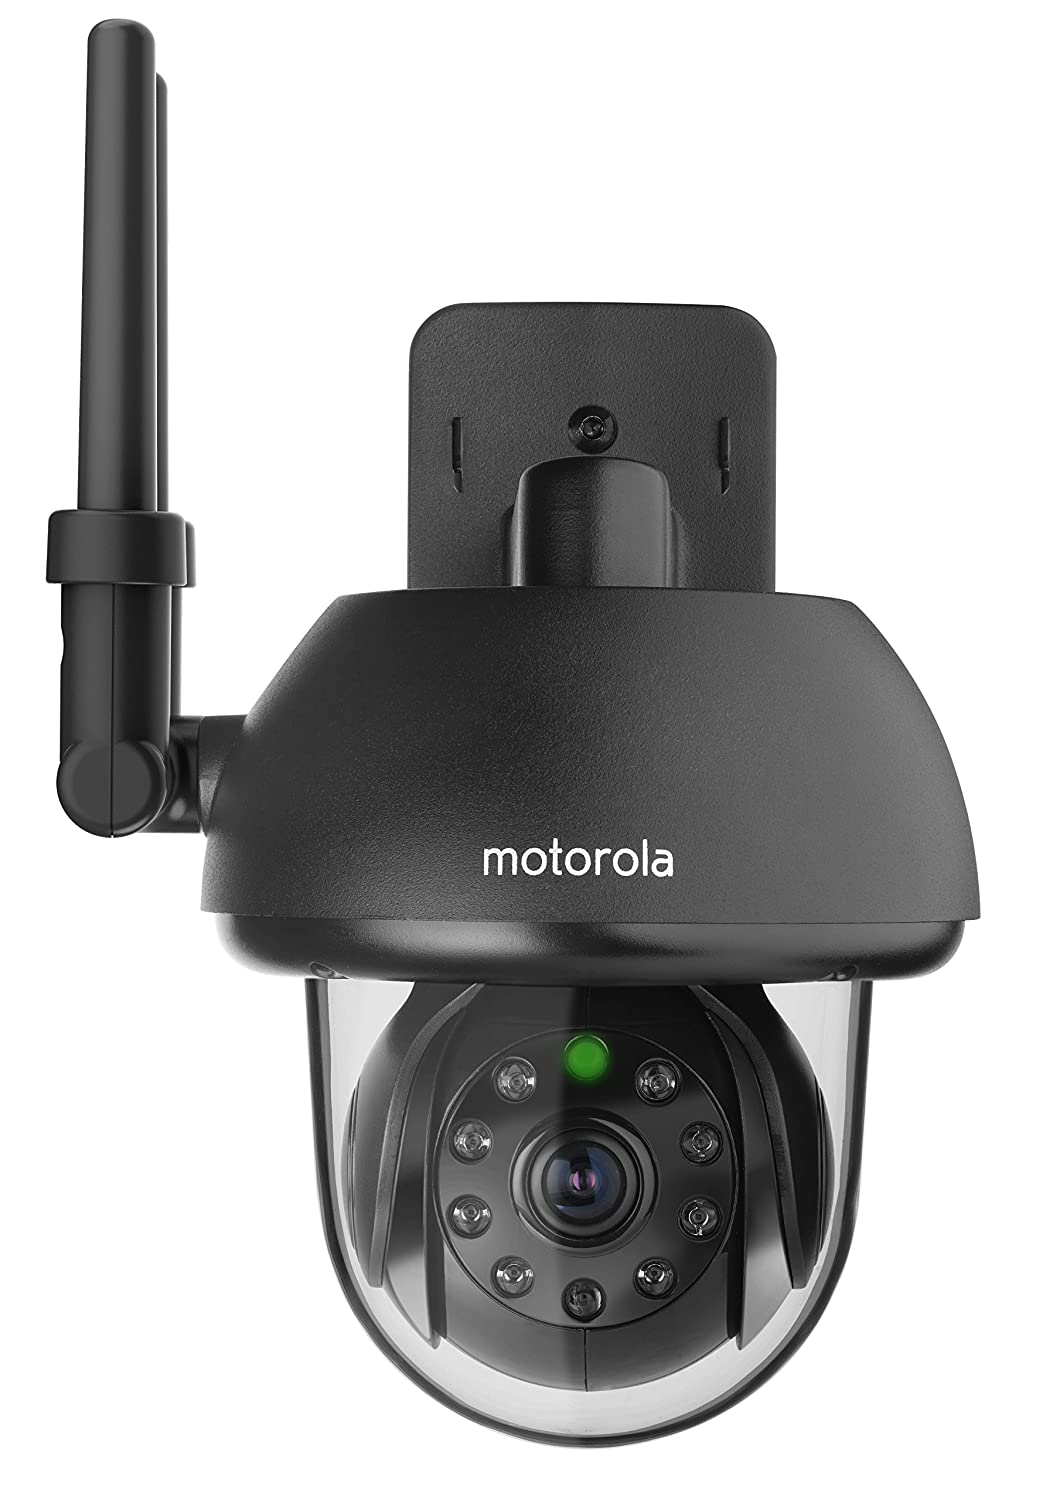 Amazon customer reviews motorola focus66 wi fi hd - Amazon Com Motorola Focus73 B Wi Fi Hd Outdoor Home Monitoring Camera With Remote Pan Tilt Zoom Black Camera Photo